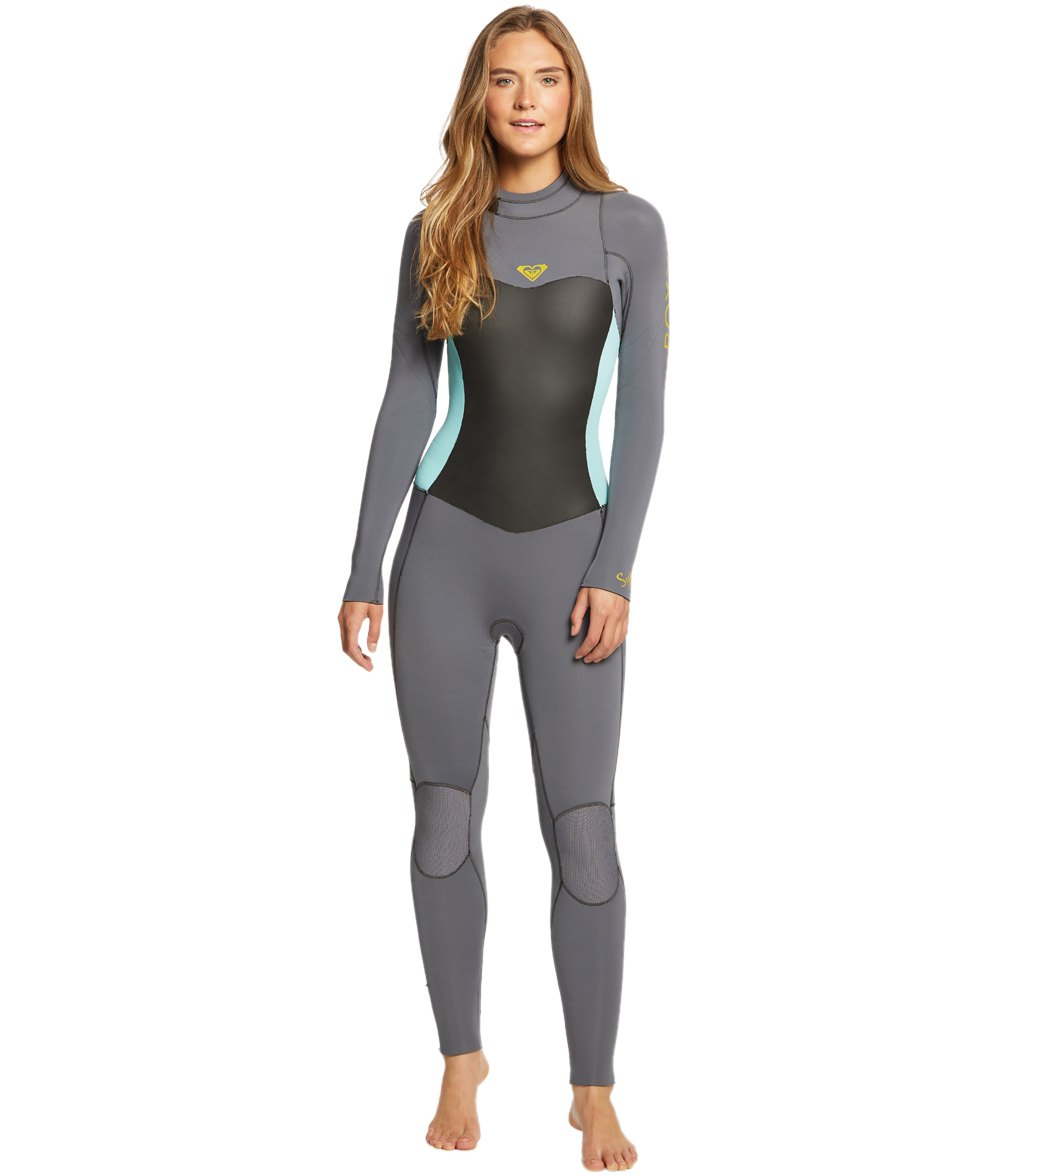 Roxy Women s 4 3MM Syncro Series Back Zip Fullsuit at SwimOutlet.com ... dc80cfa9e